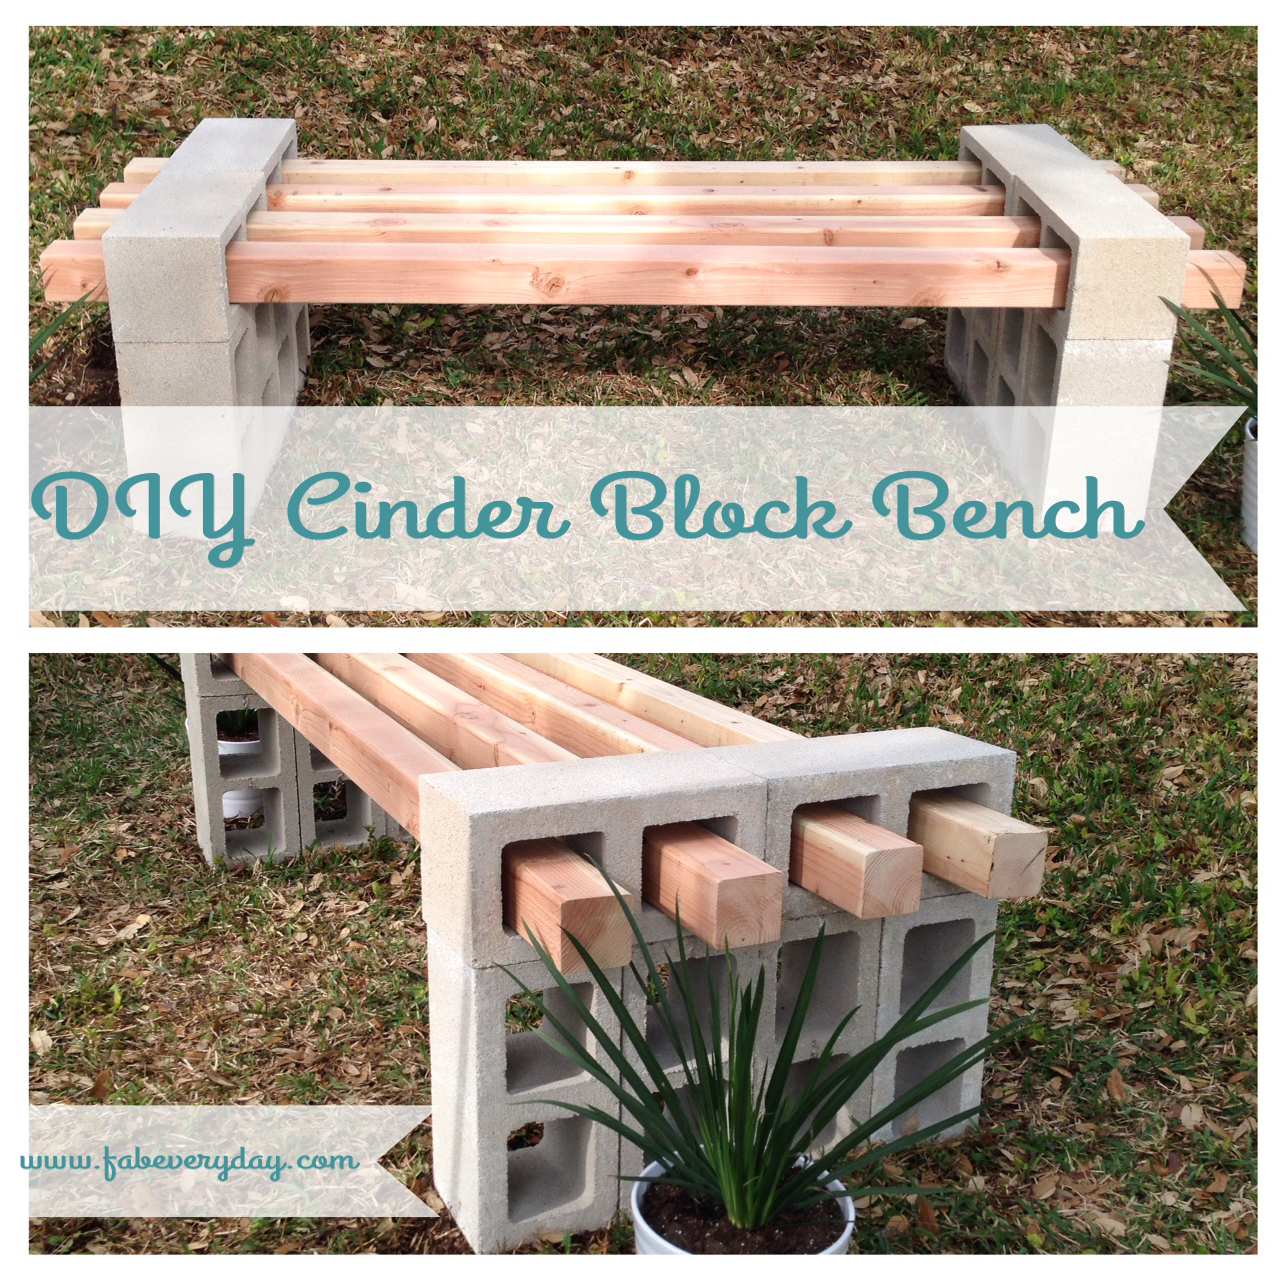 Design Cinder Block Bench fab everyday because life should be fabulous www 4 25 2014